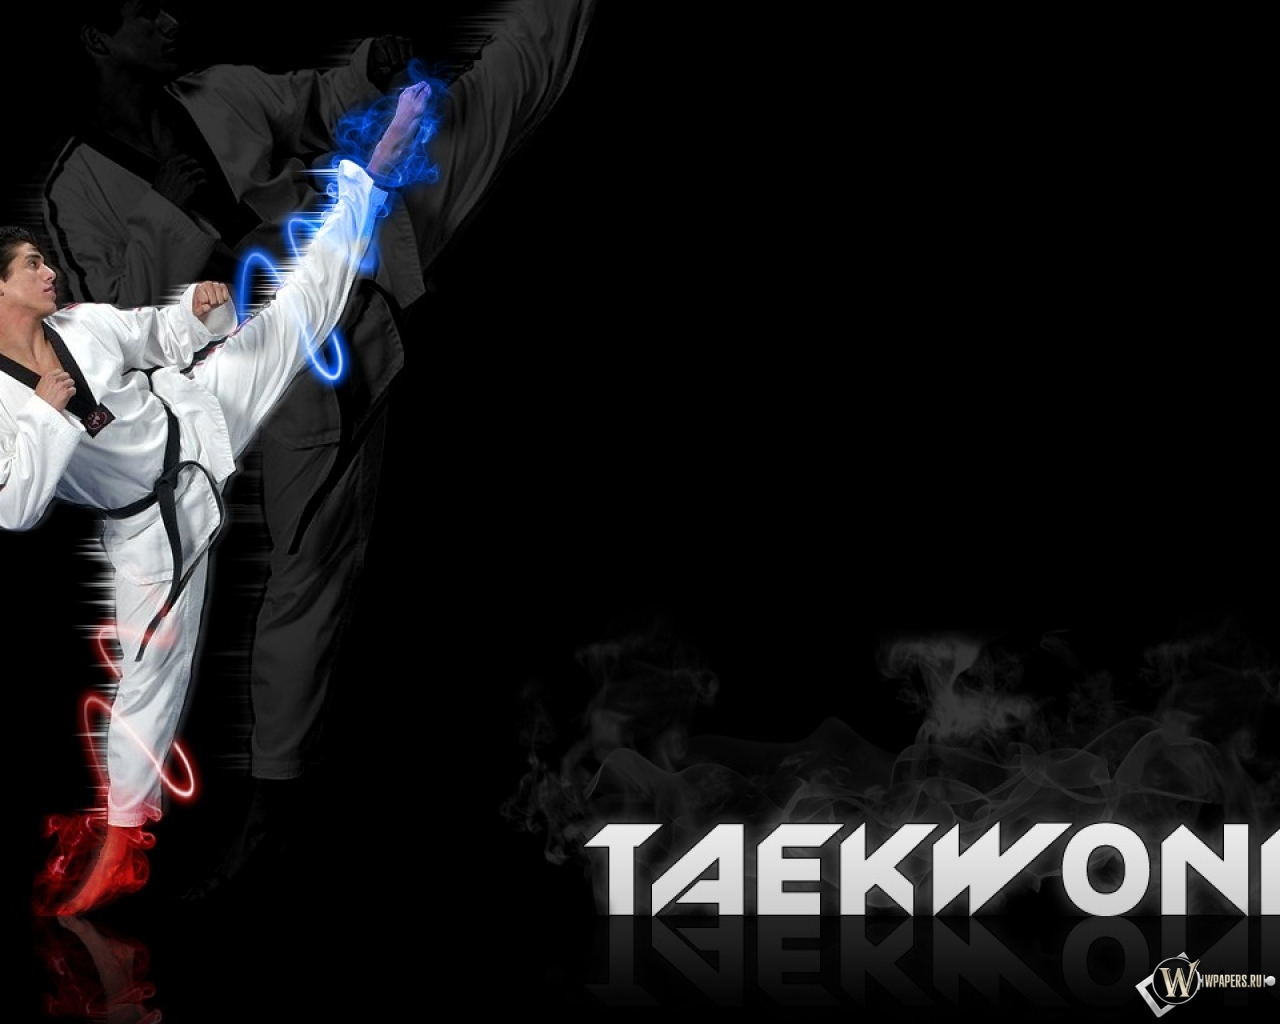 Gallery images and information Tkd Wallpaper 1280x1024